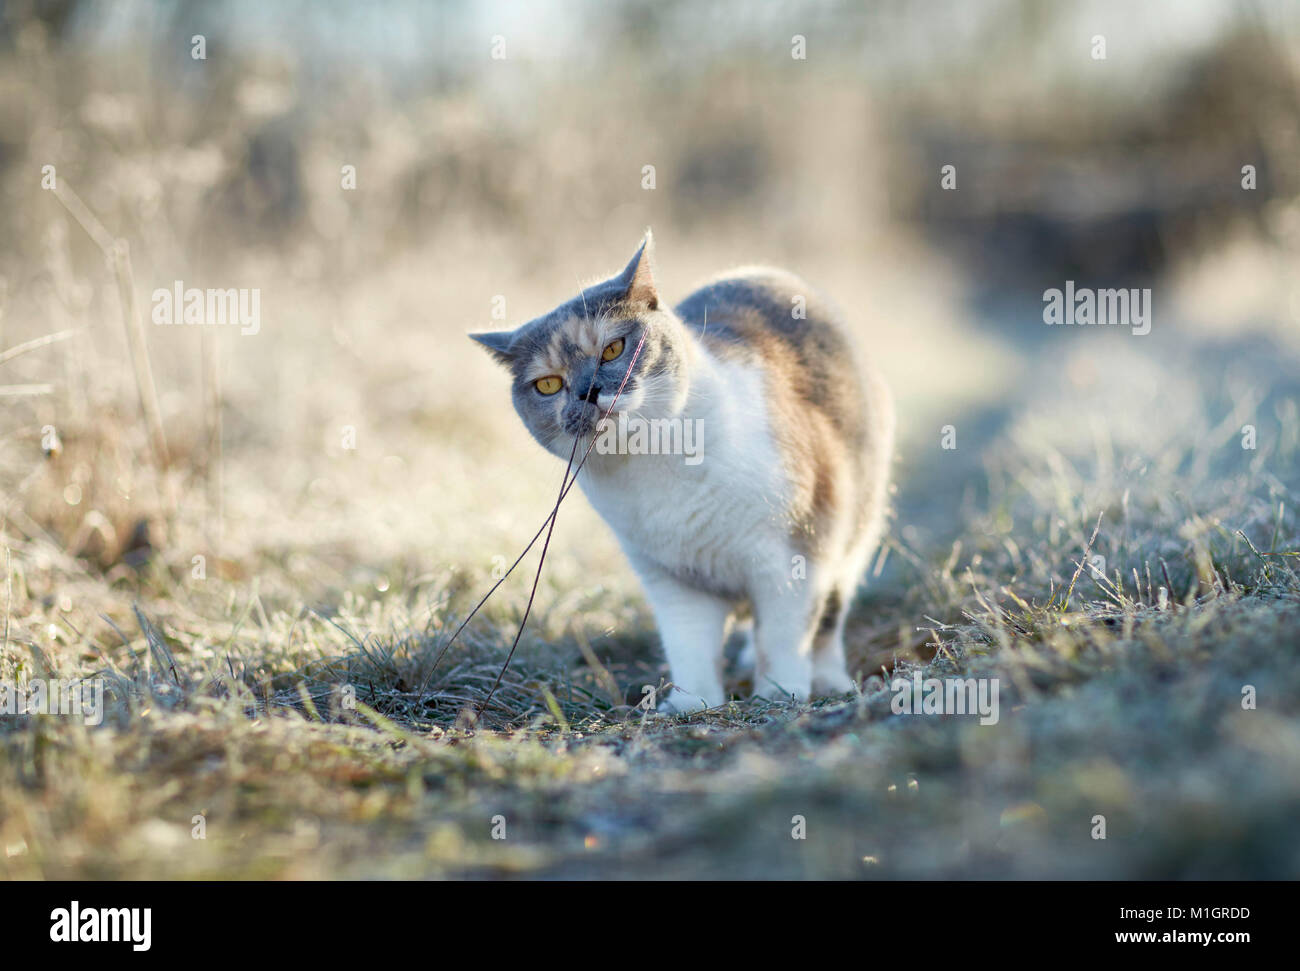 British Shorthair. Adult cat on a frosty morning in a garden, sniffing at stalk. Germany - Stock Image